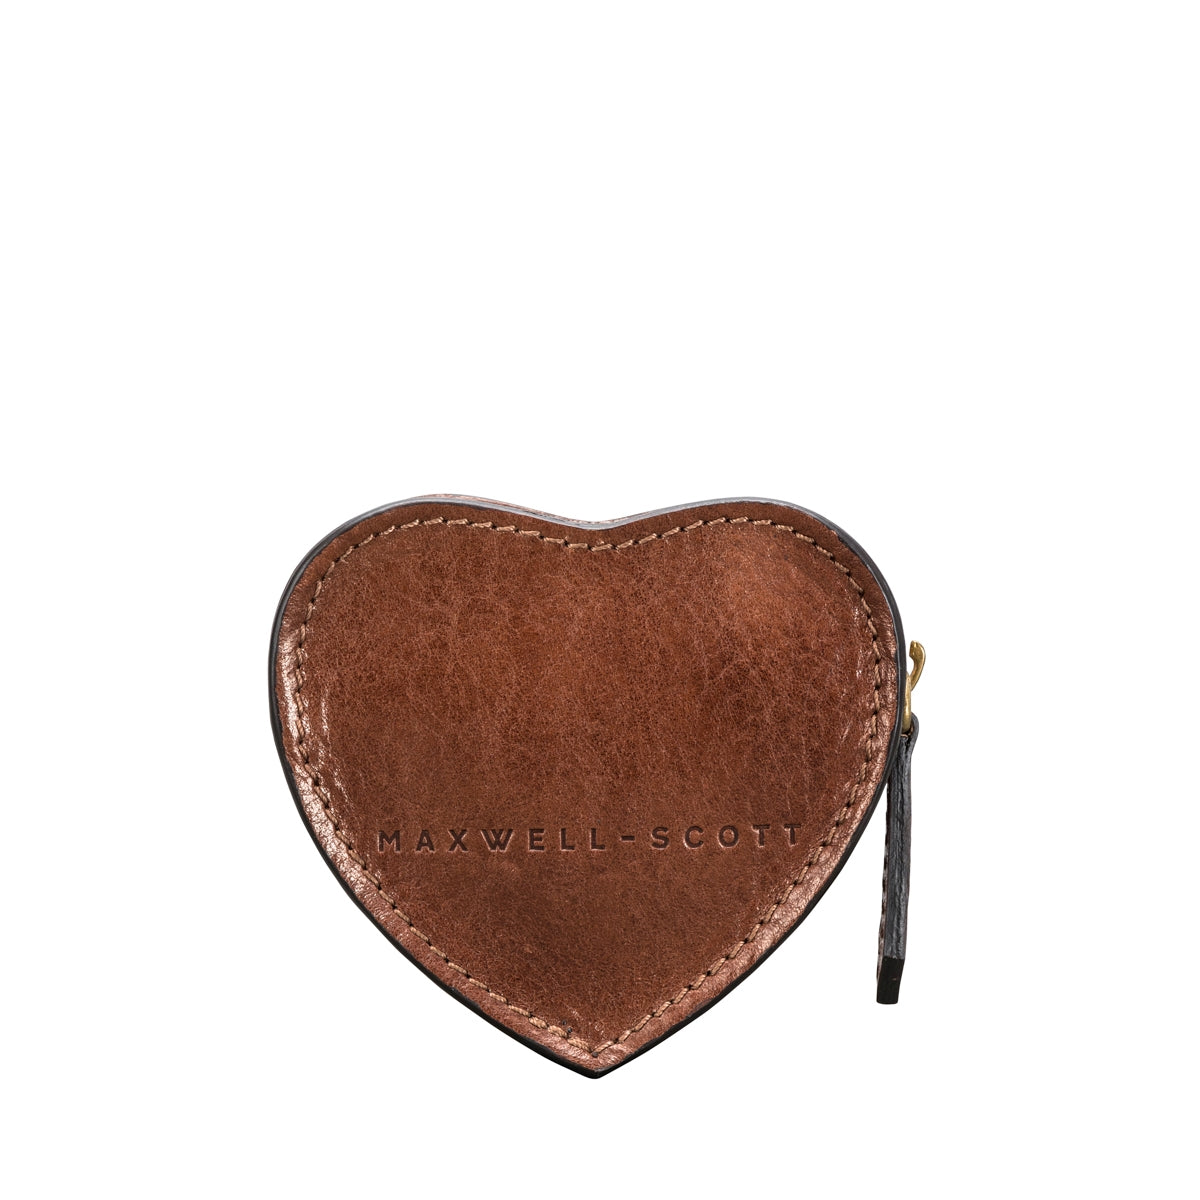 Image 4 of the 'Mirabella' Tan Leather Heart Coin Purse